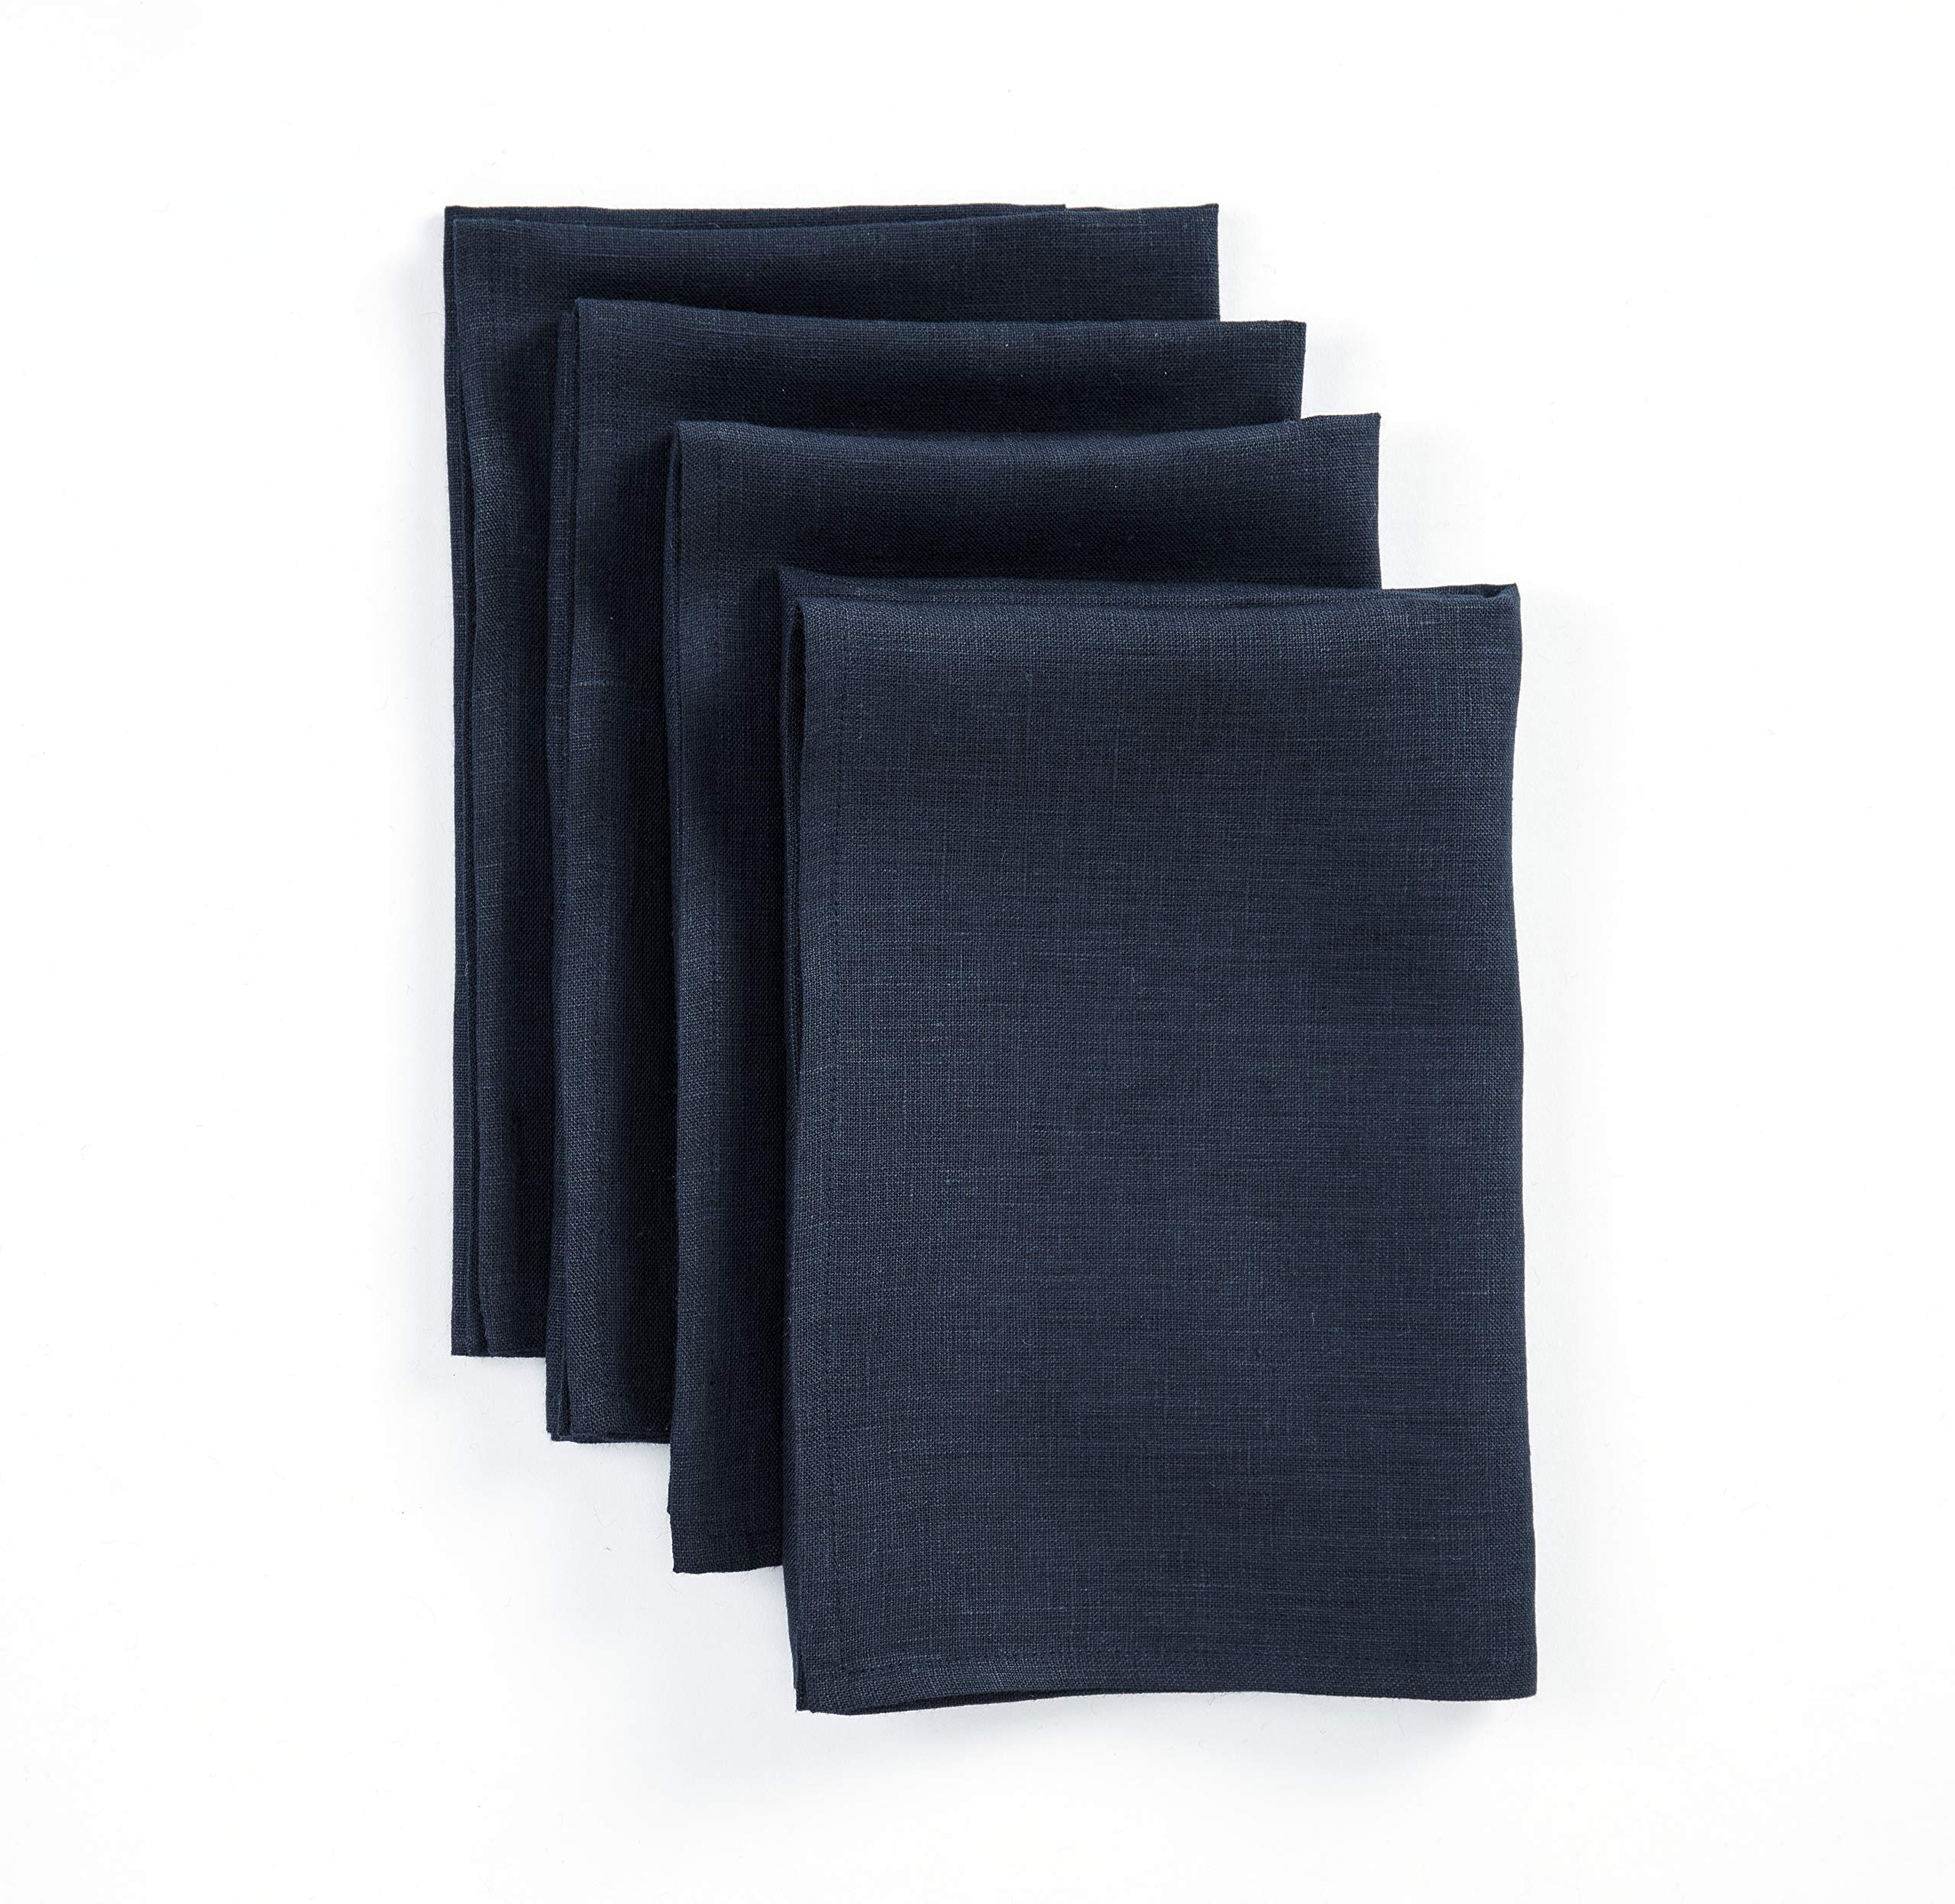 Solino Home Linen Dinner Napkins - 20 x 20 Inch Navy, 4 Pack Linen Napkins, Athena - 100% European Flax, Soft & Handcrafted with Mitered Corners